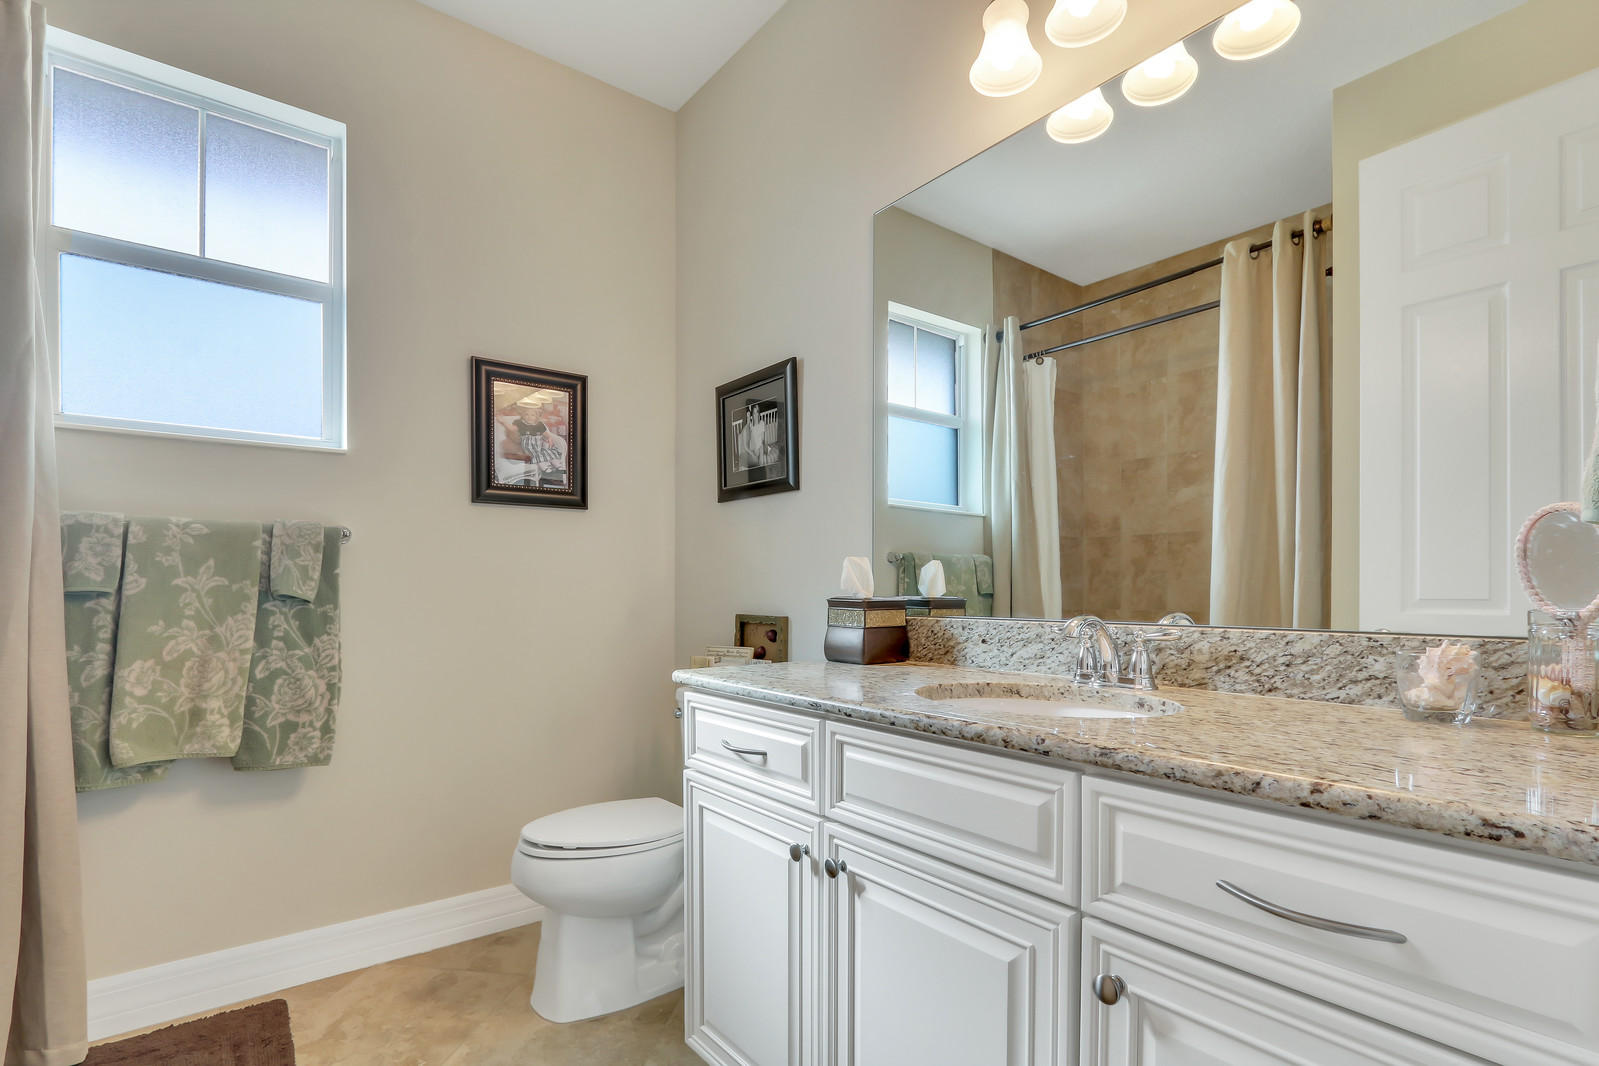 1395 Dakota Drive  - Abacoa Homes - photo 19